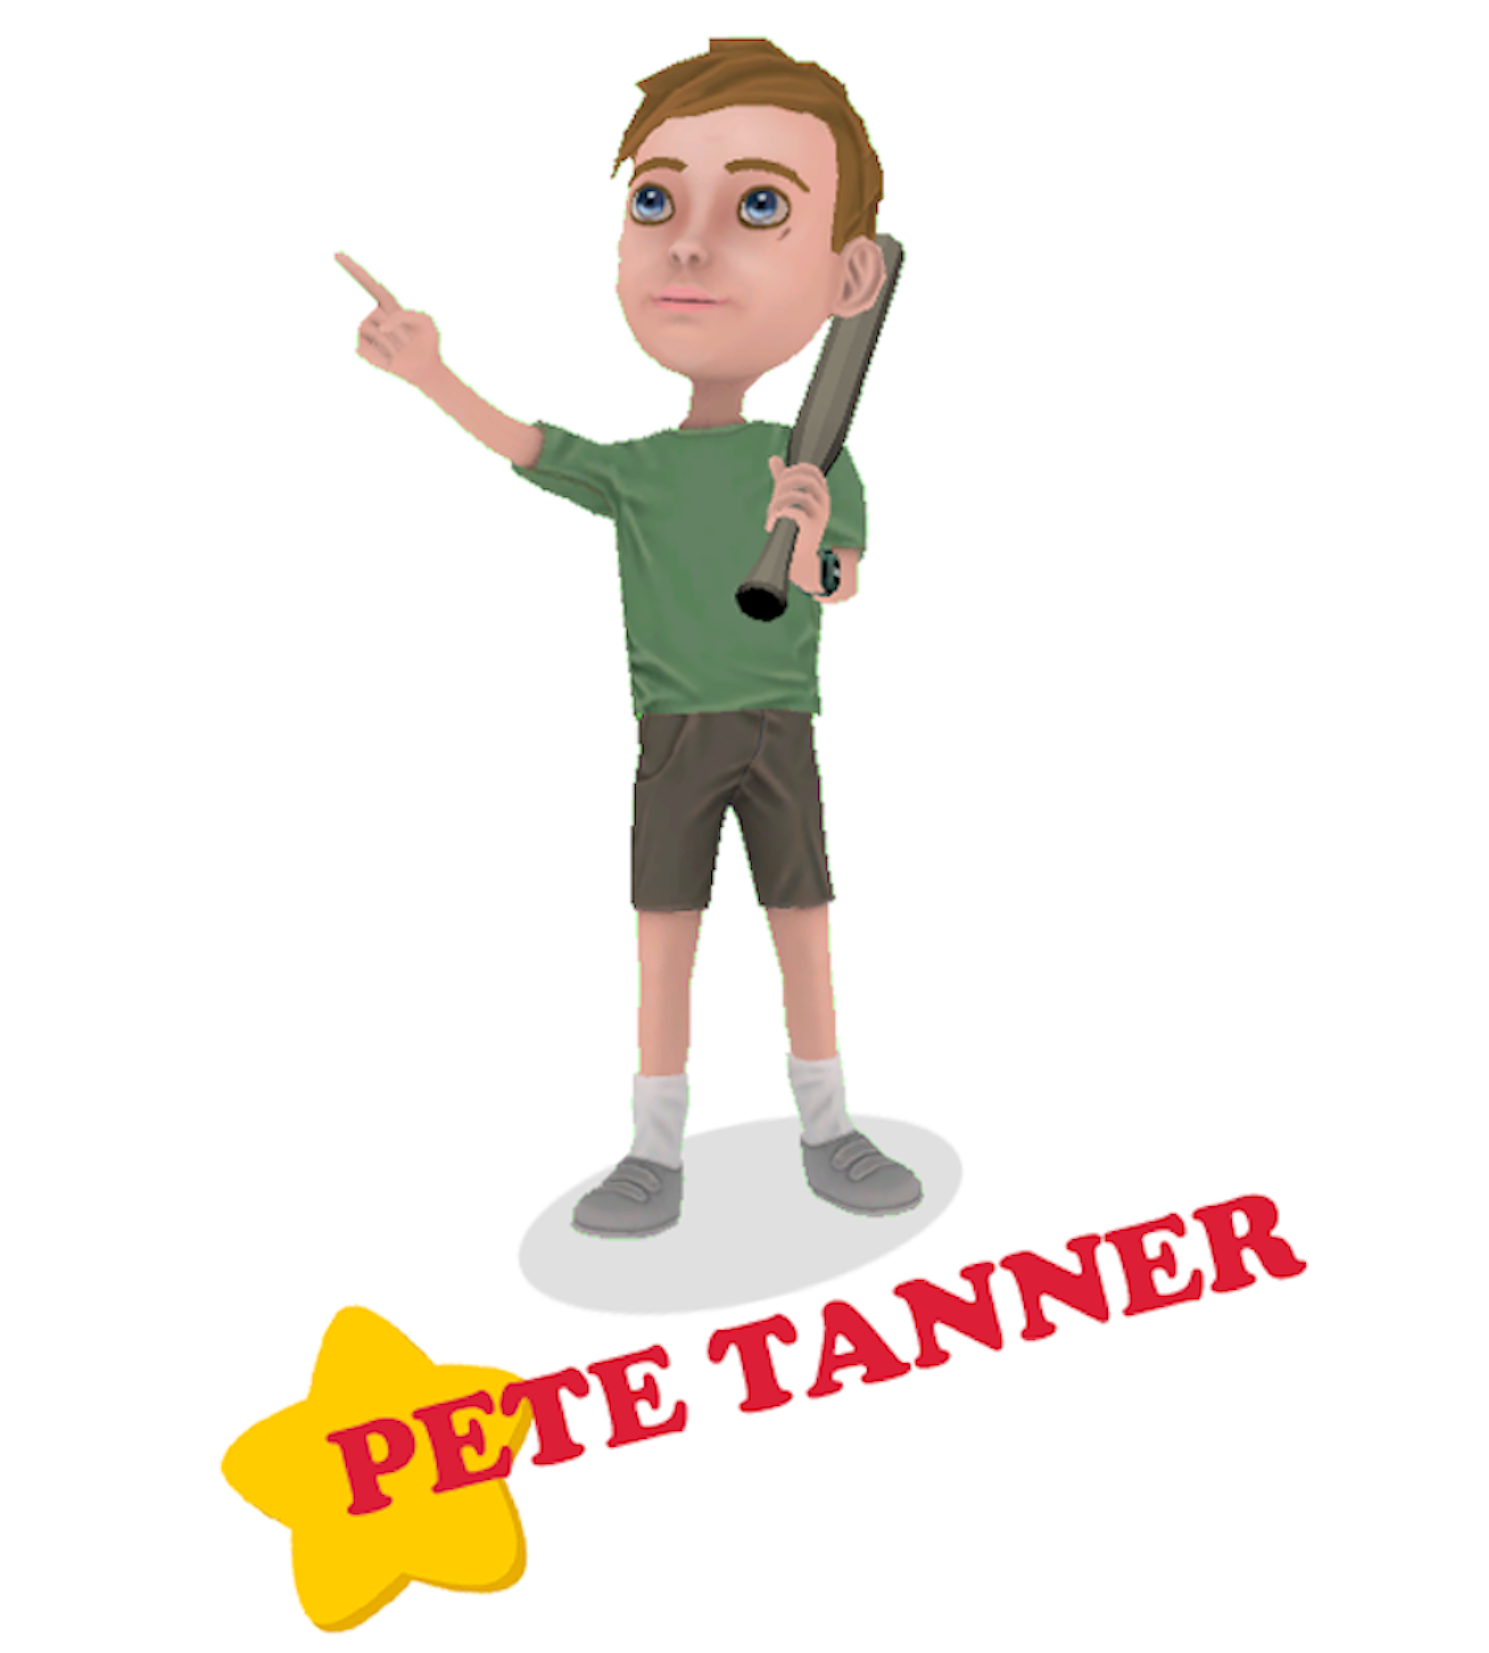 Pete Tanner